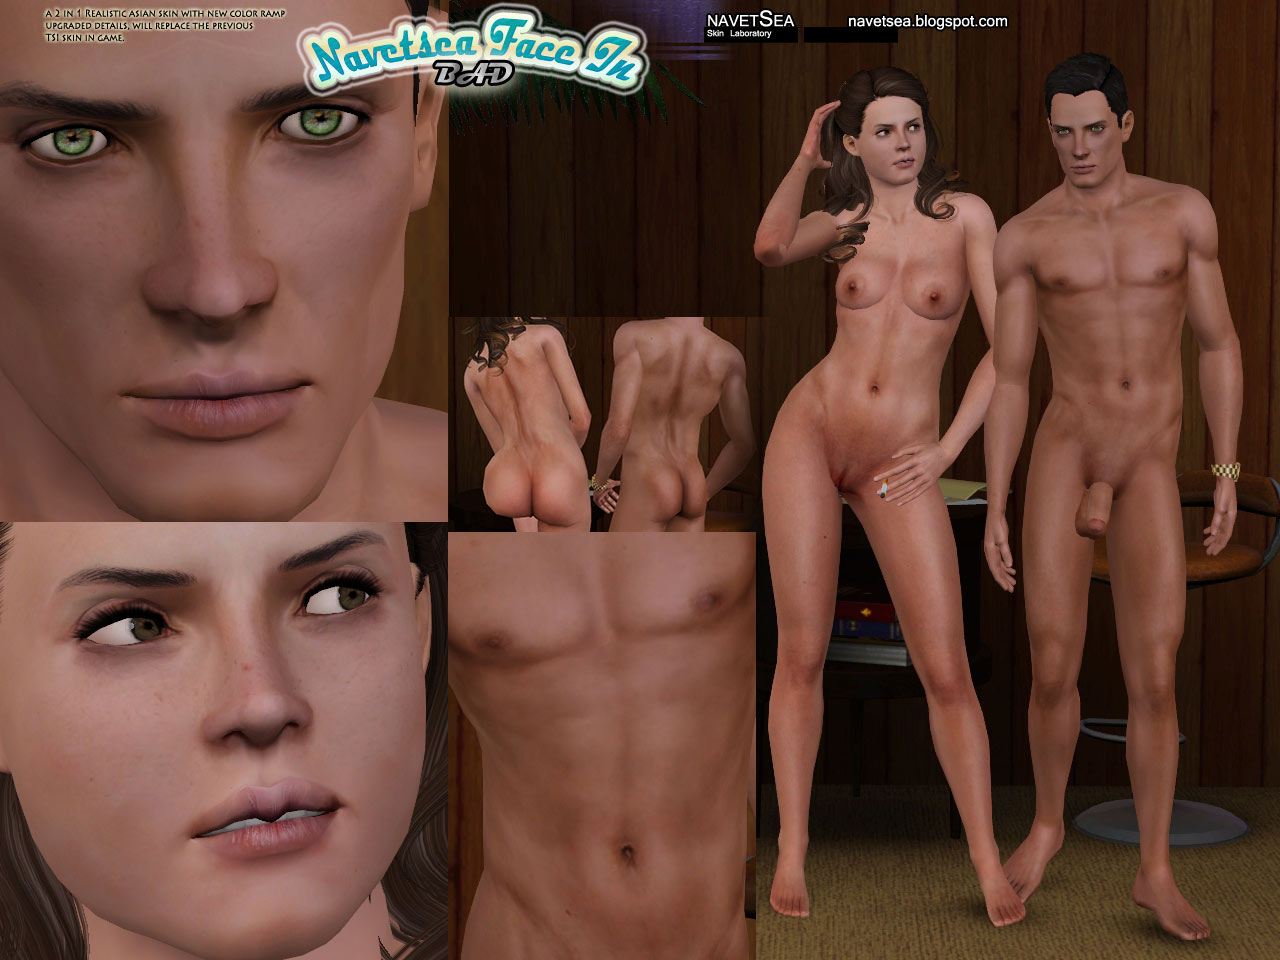 The sims having sex naked hentai videos